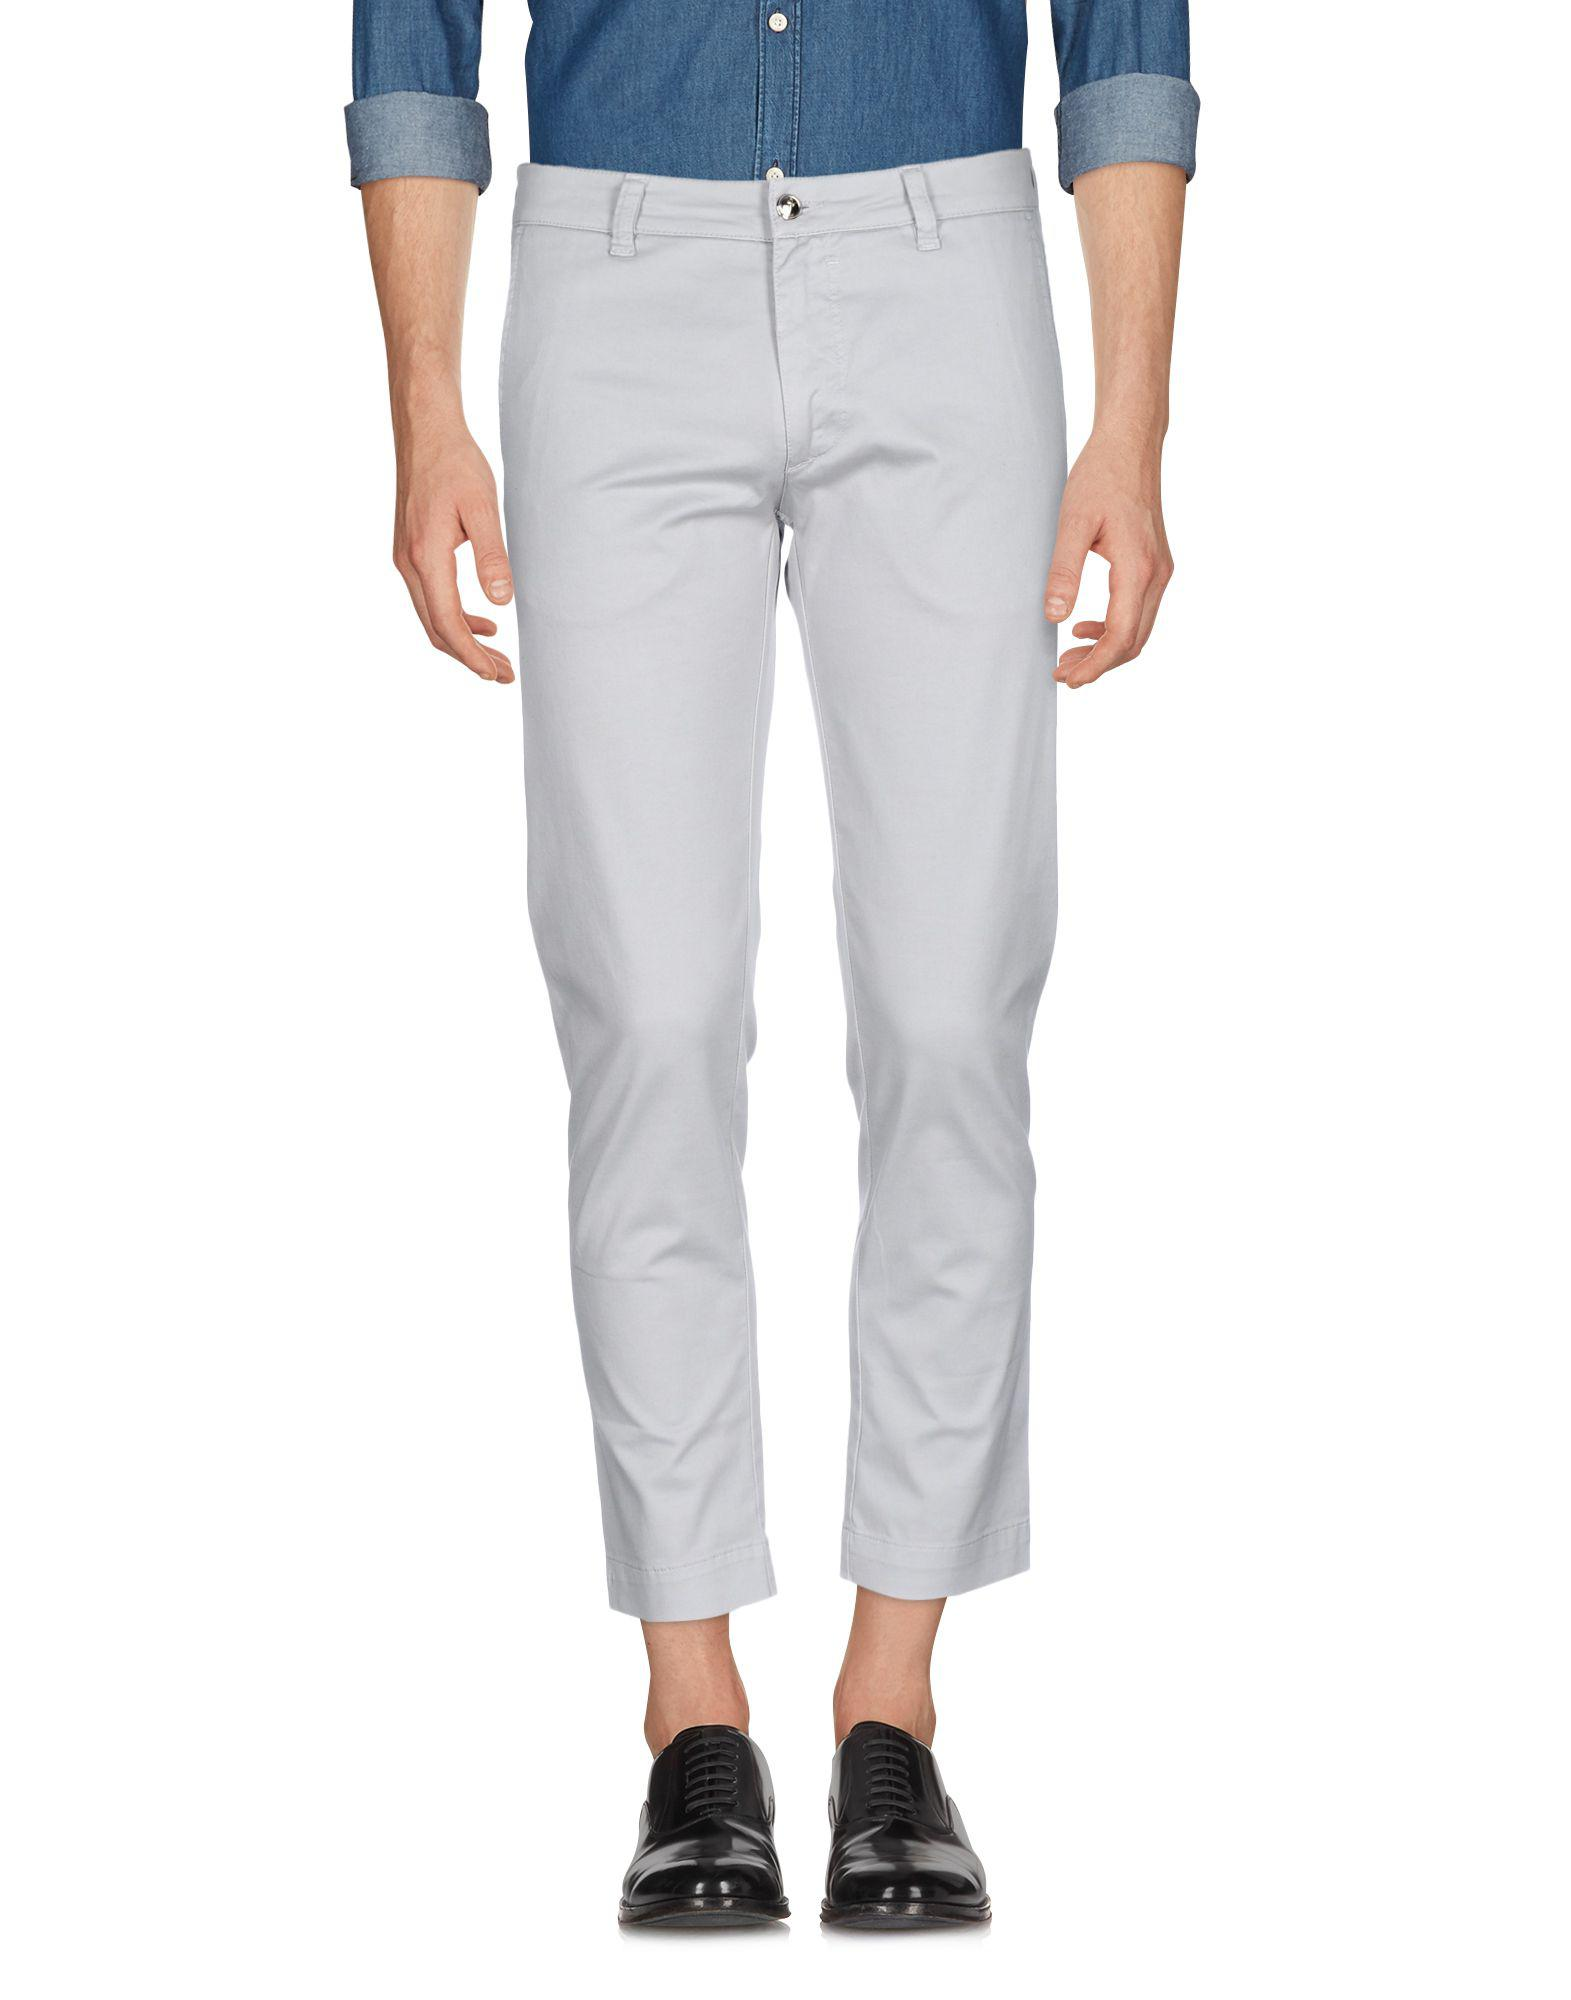 Discount Wide Range Of Free Shipping Finishline TROUSERS - Casual trousers Cesare Paciotti Sunshine Sale Great Deals kXEqpQXnK